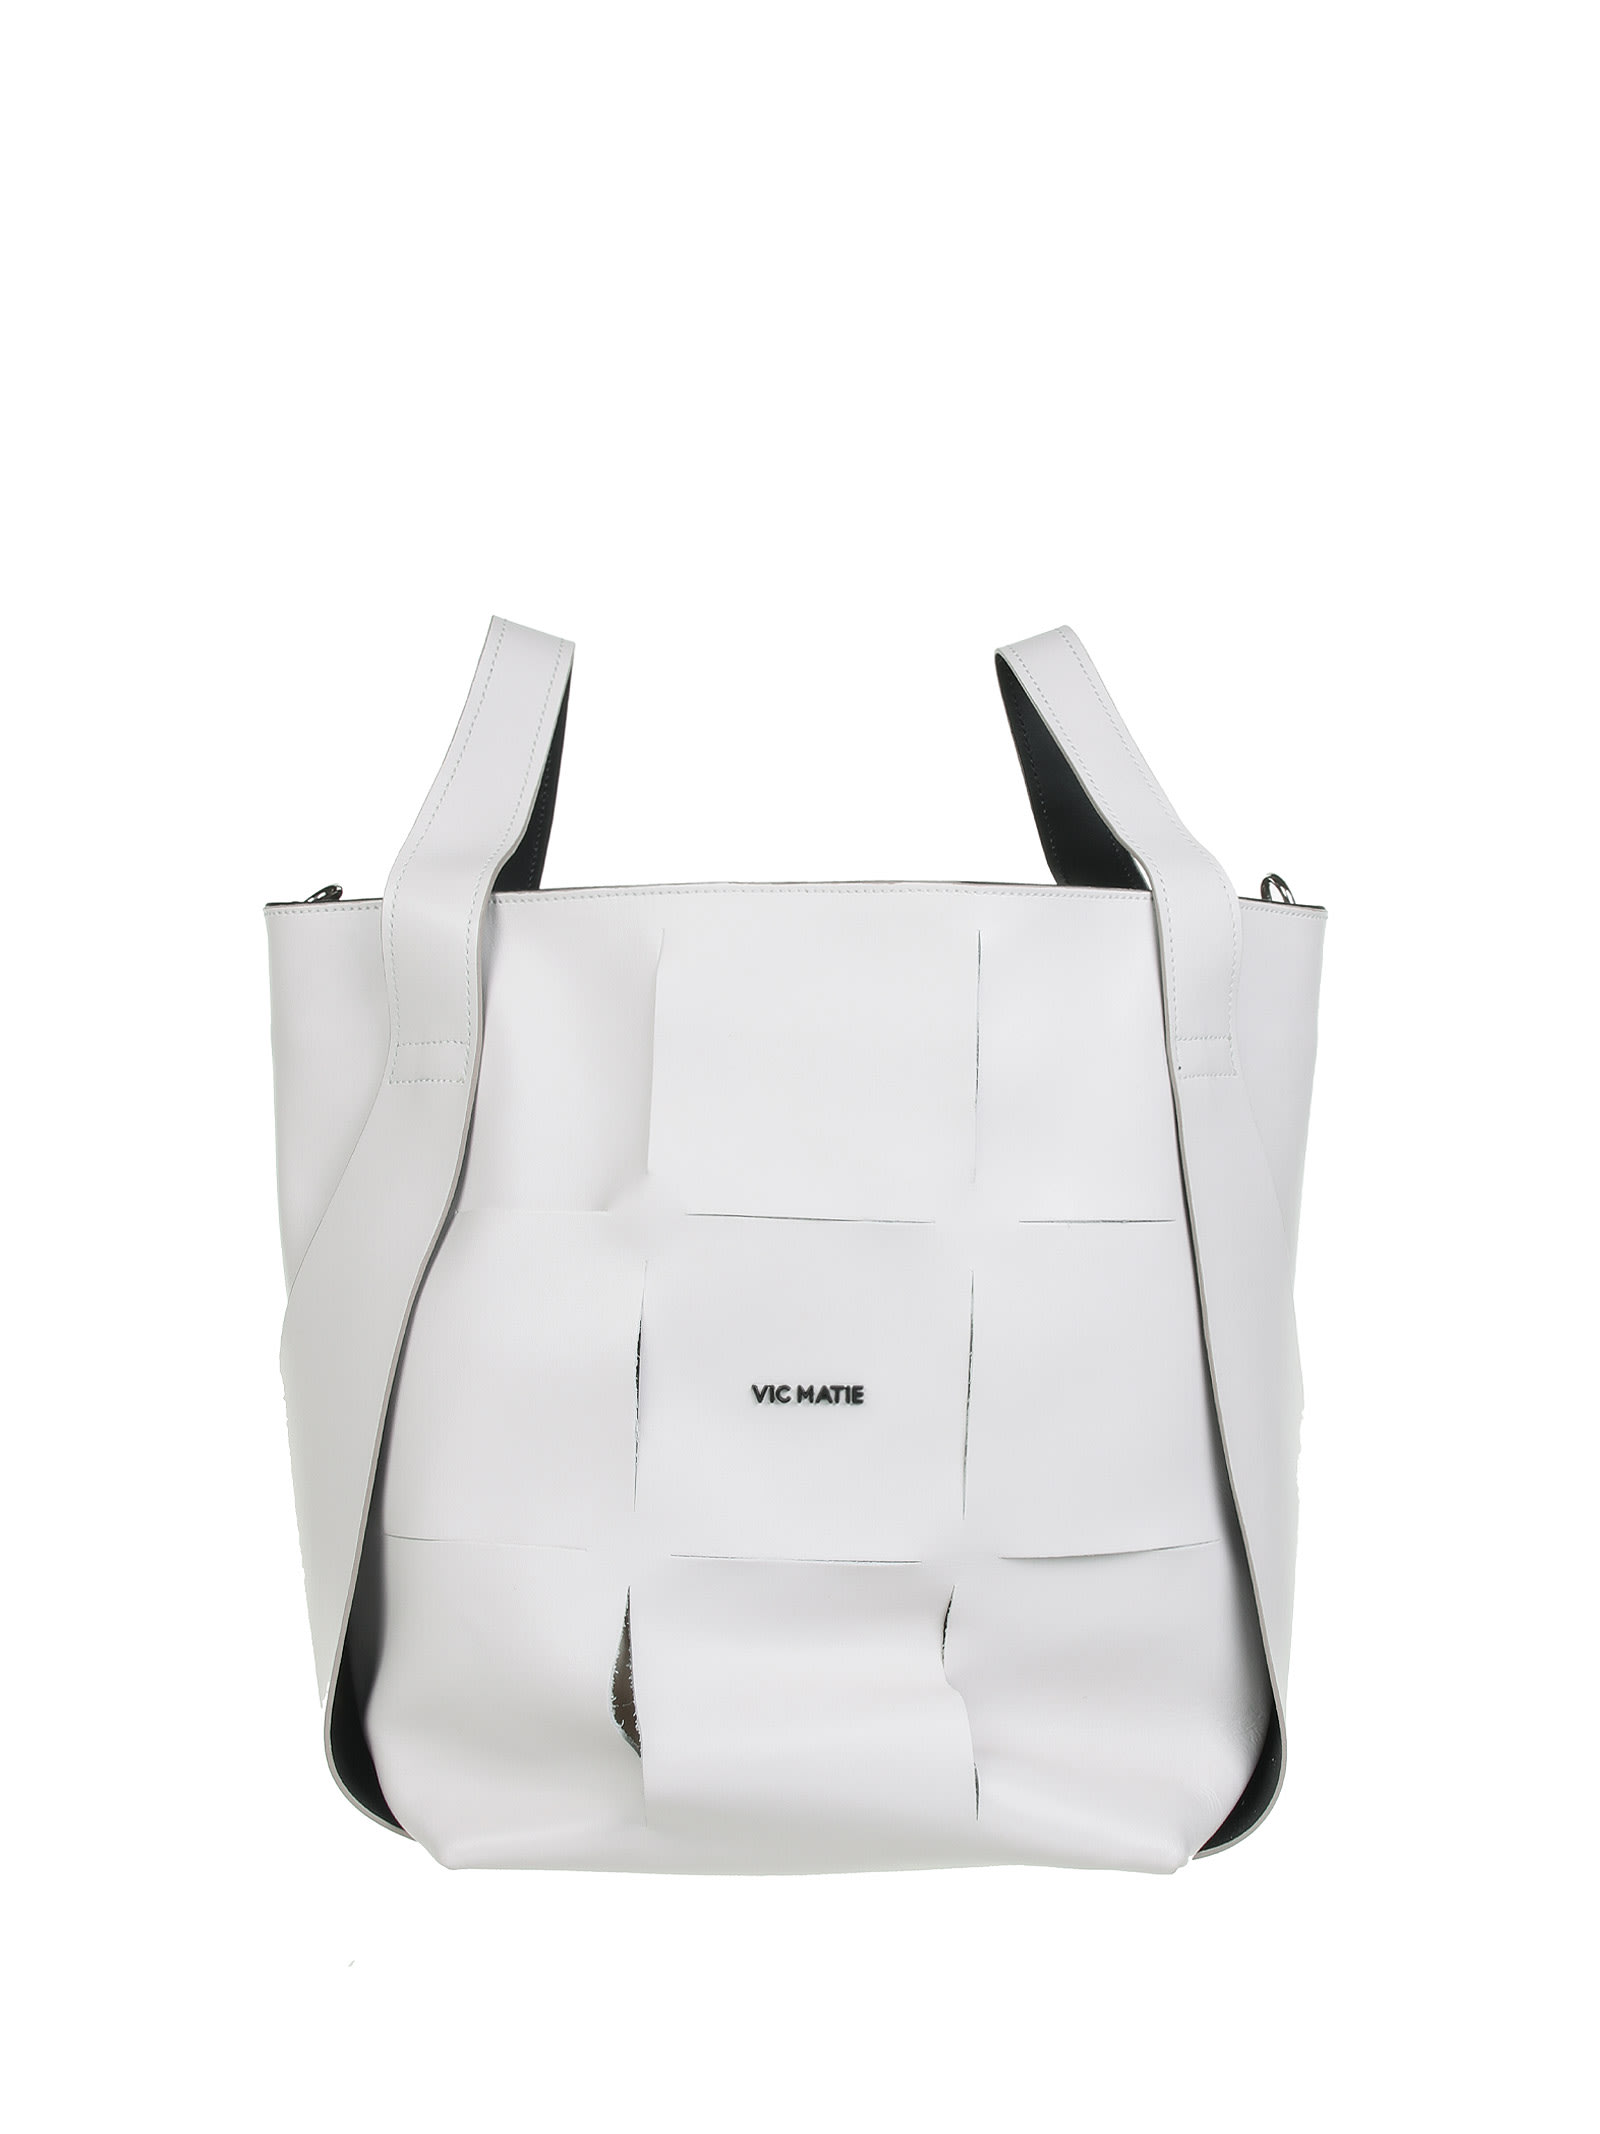 Vic Matie Leathers NADEGE MAXI BAG